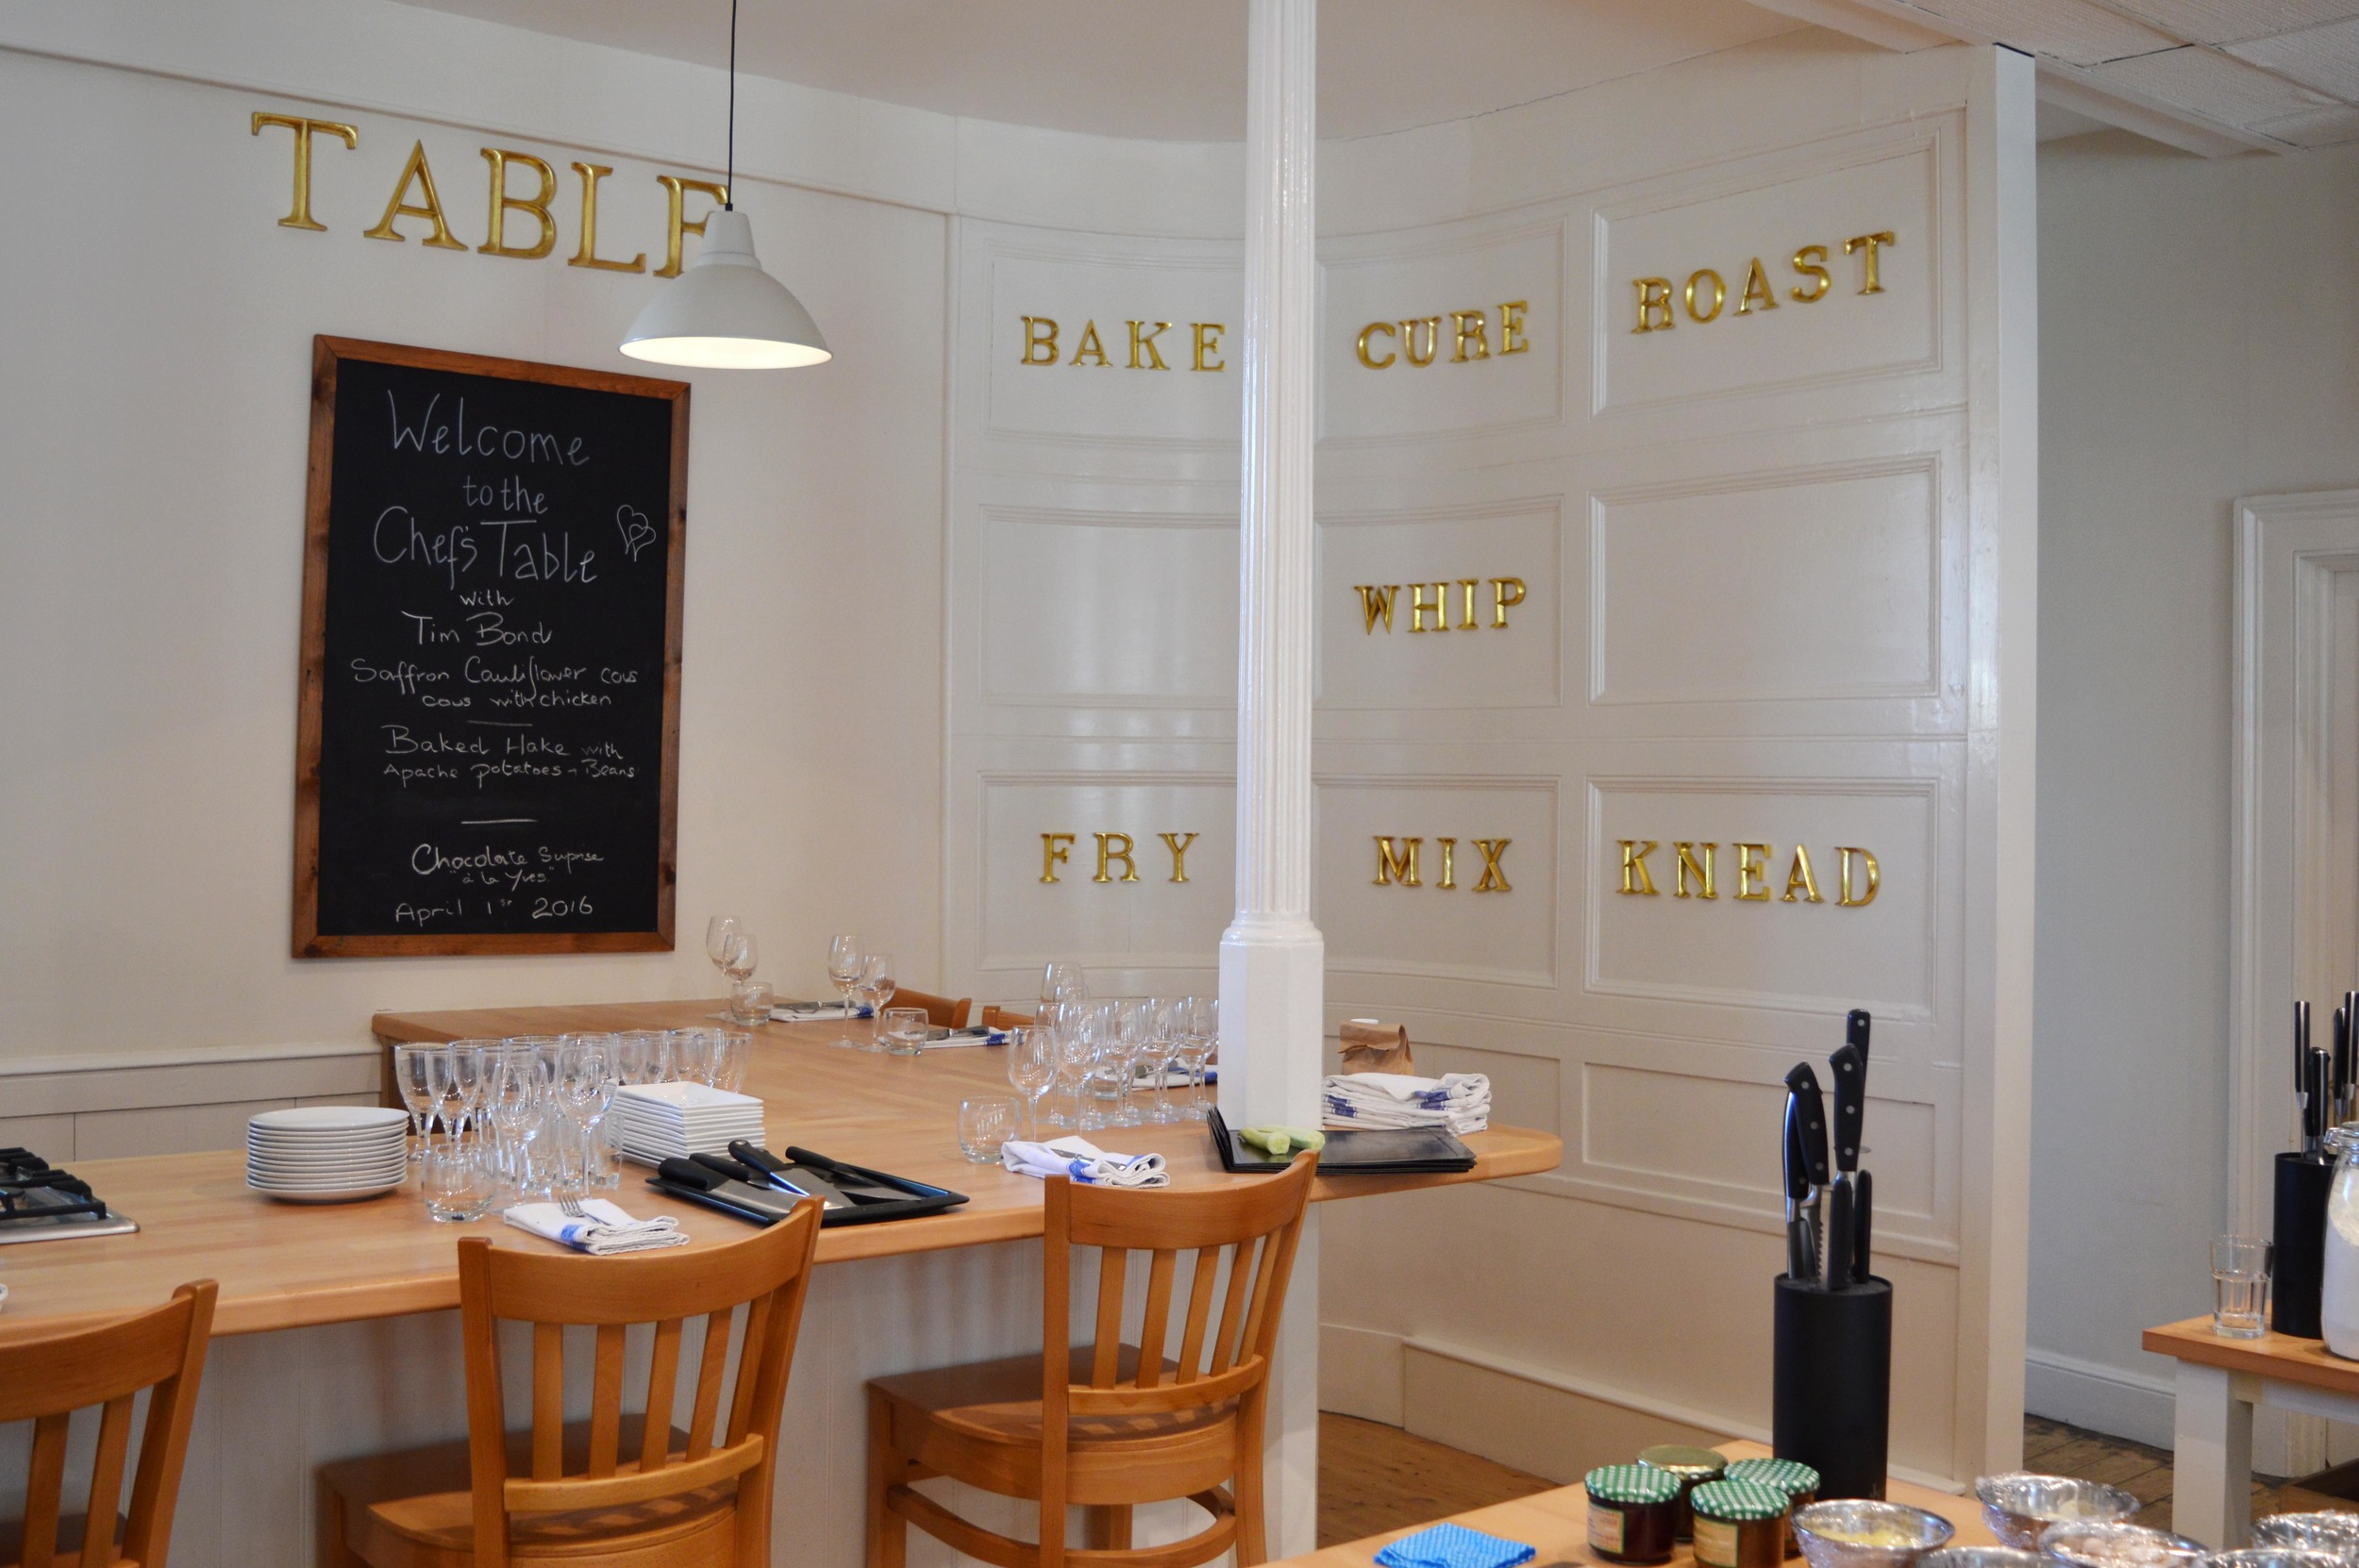 The lovely interior of the cookery school